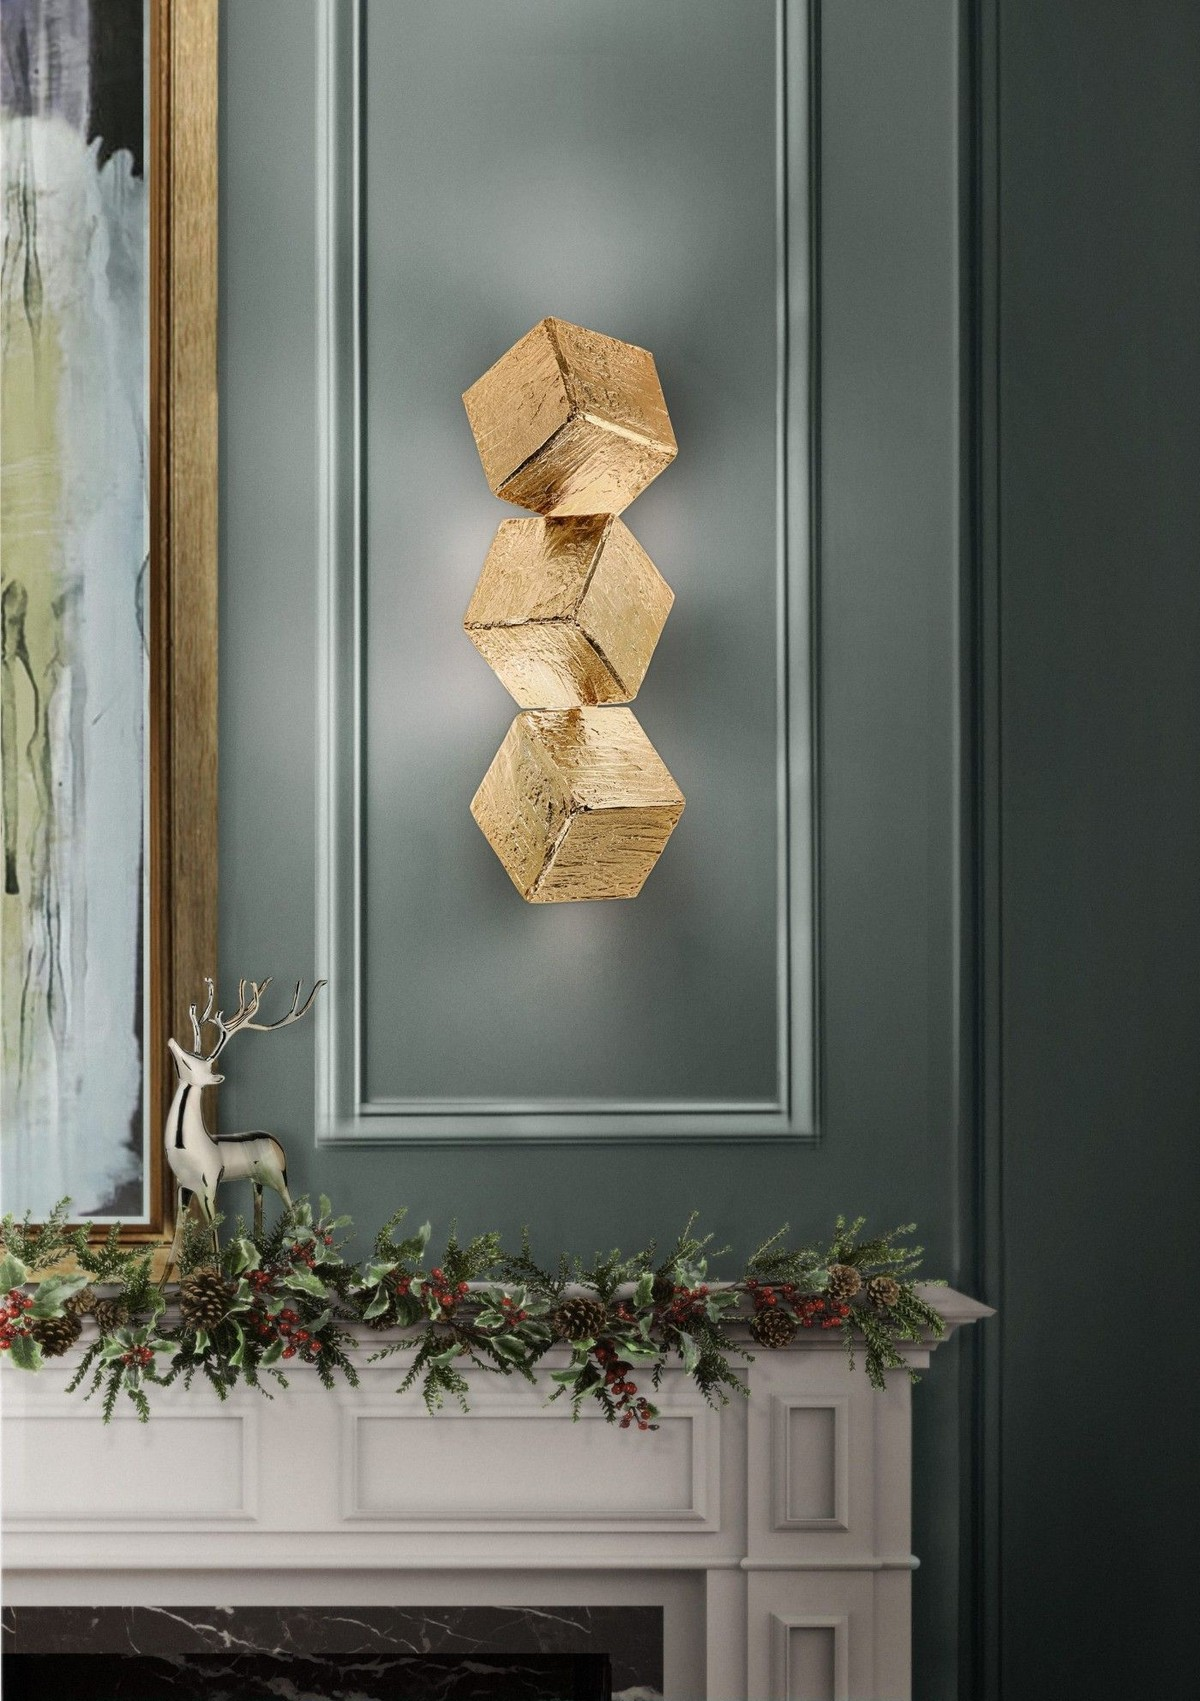 Exclusive Lighting Designs You Will Love exclusive lighting designs Exclusive Lighting Designs You Will Love cubic sconce